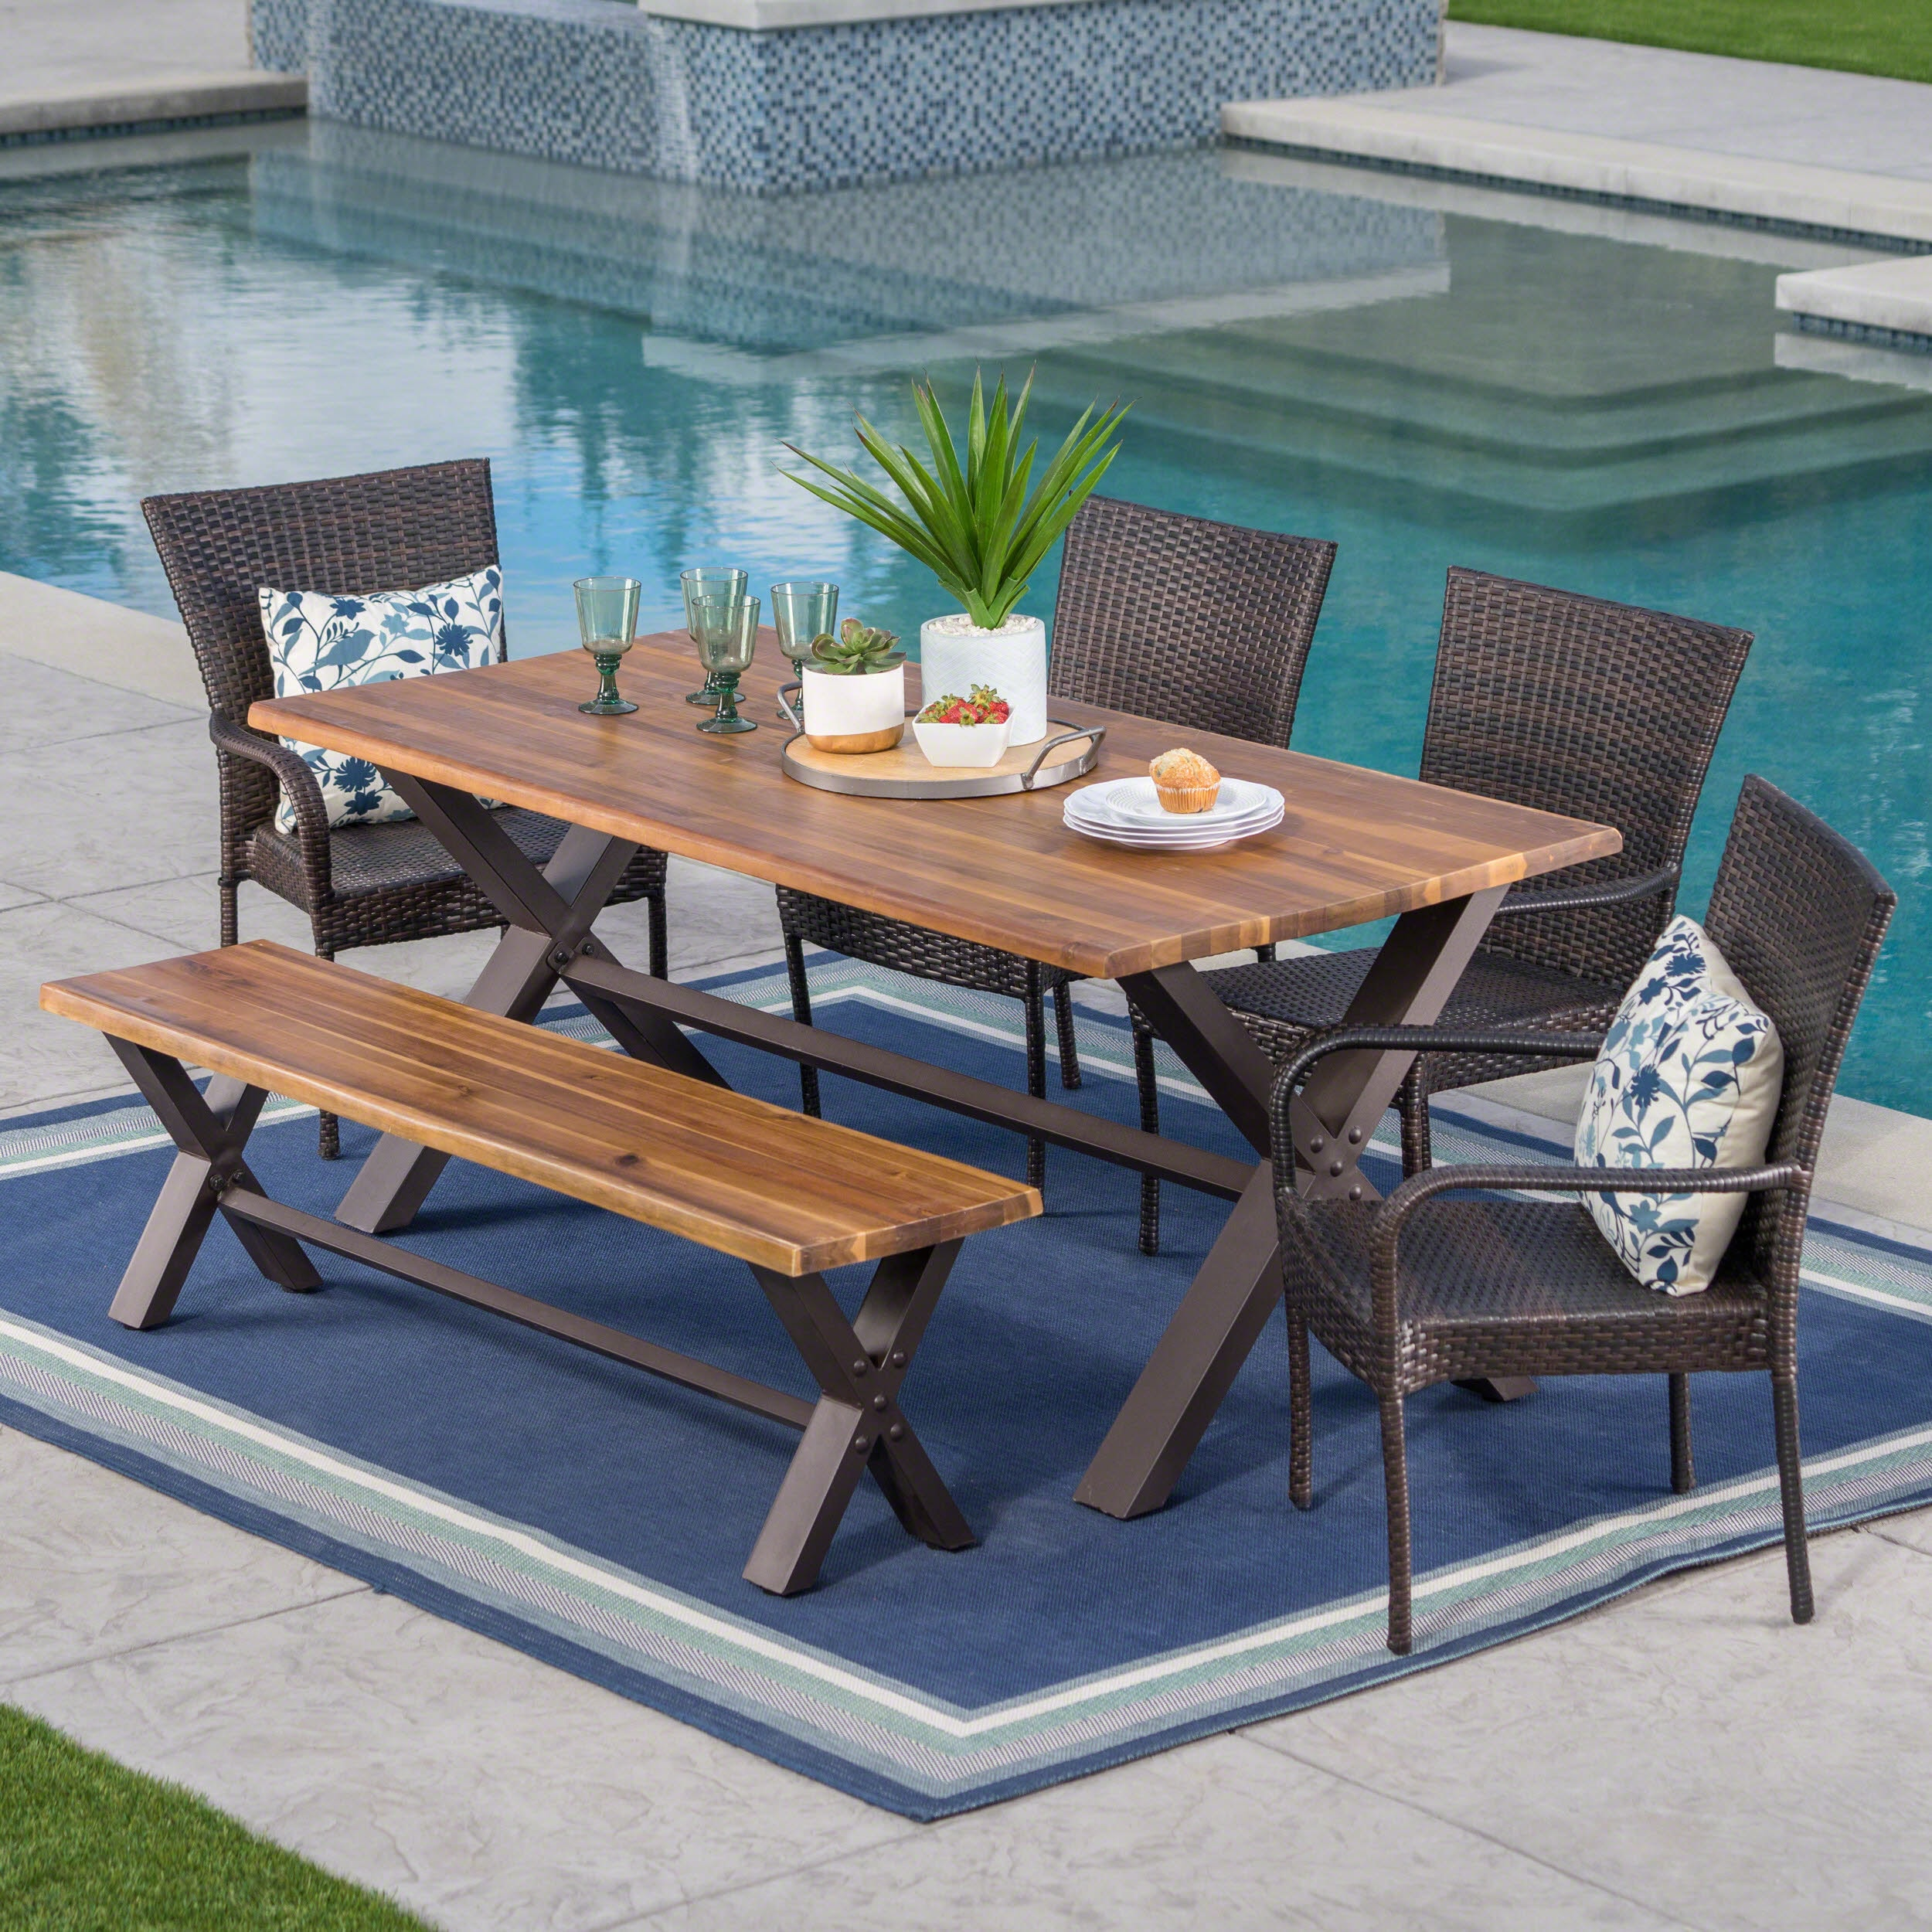 Delicieux Bullerton Outdoor 6 Piece Rectangle Wicker Wood Dining Set By Christopher  Knight Home